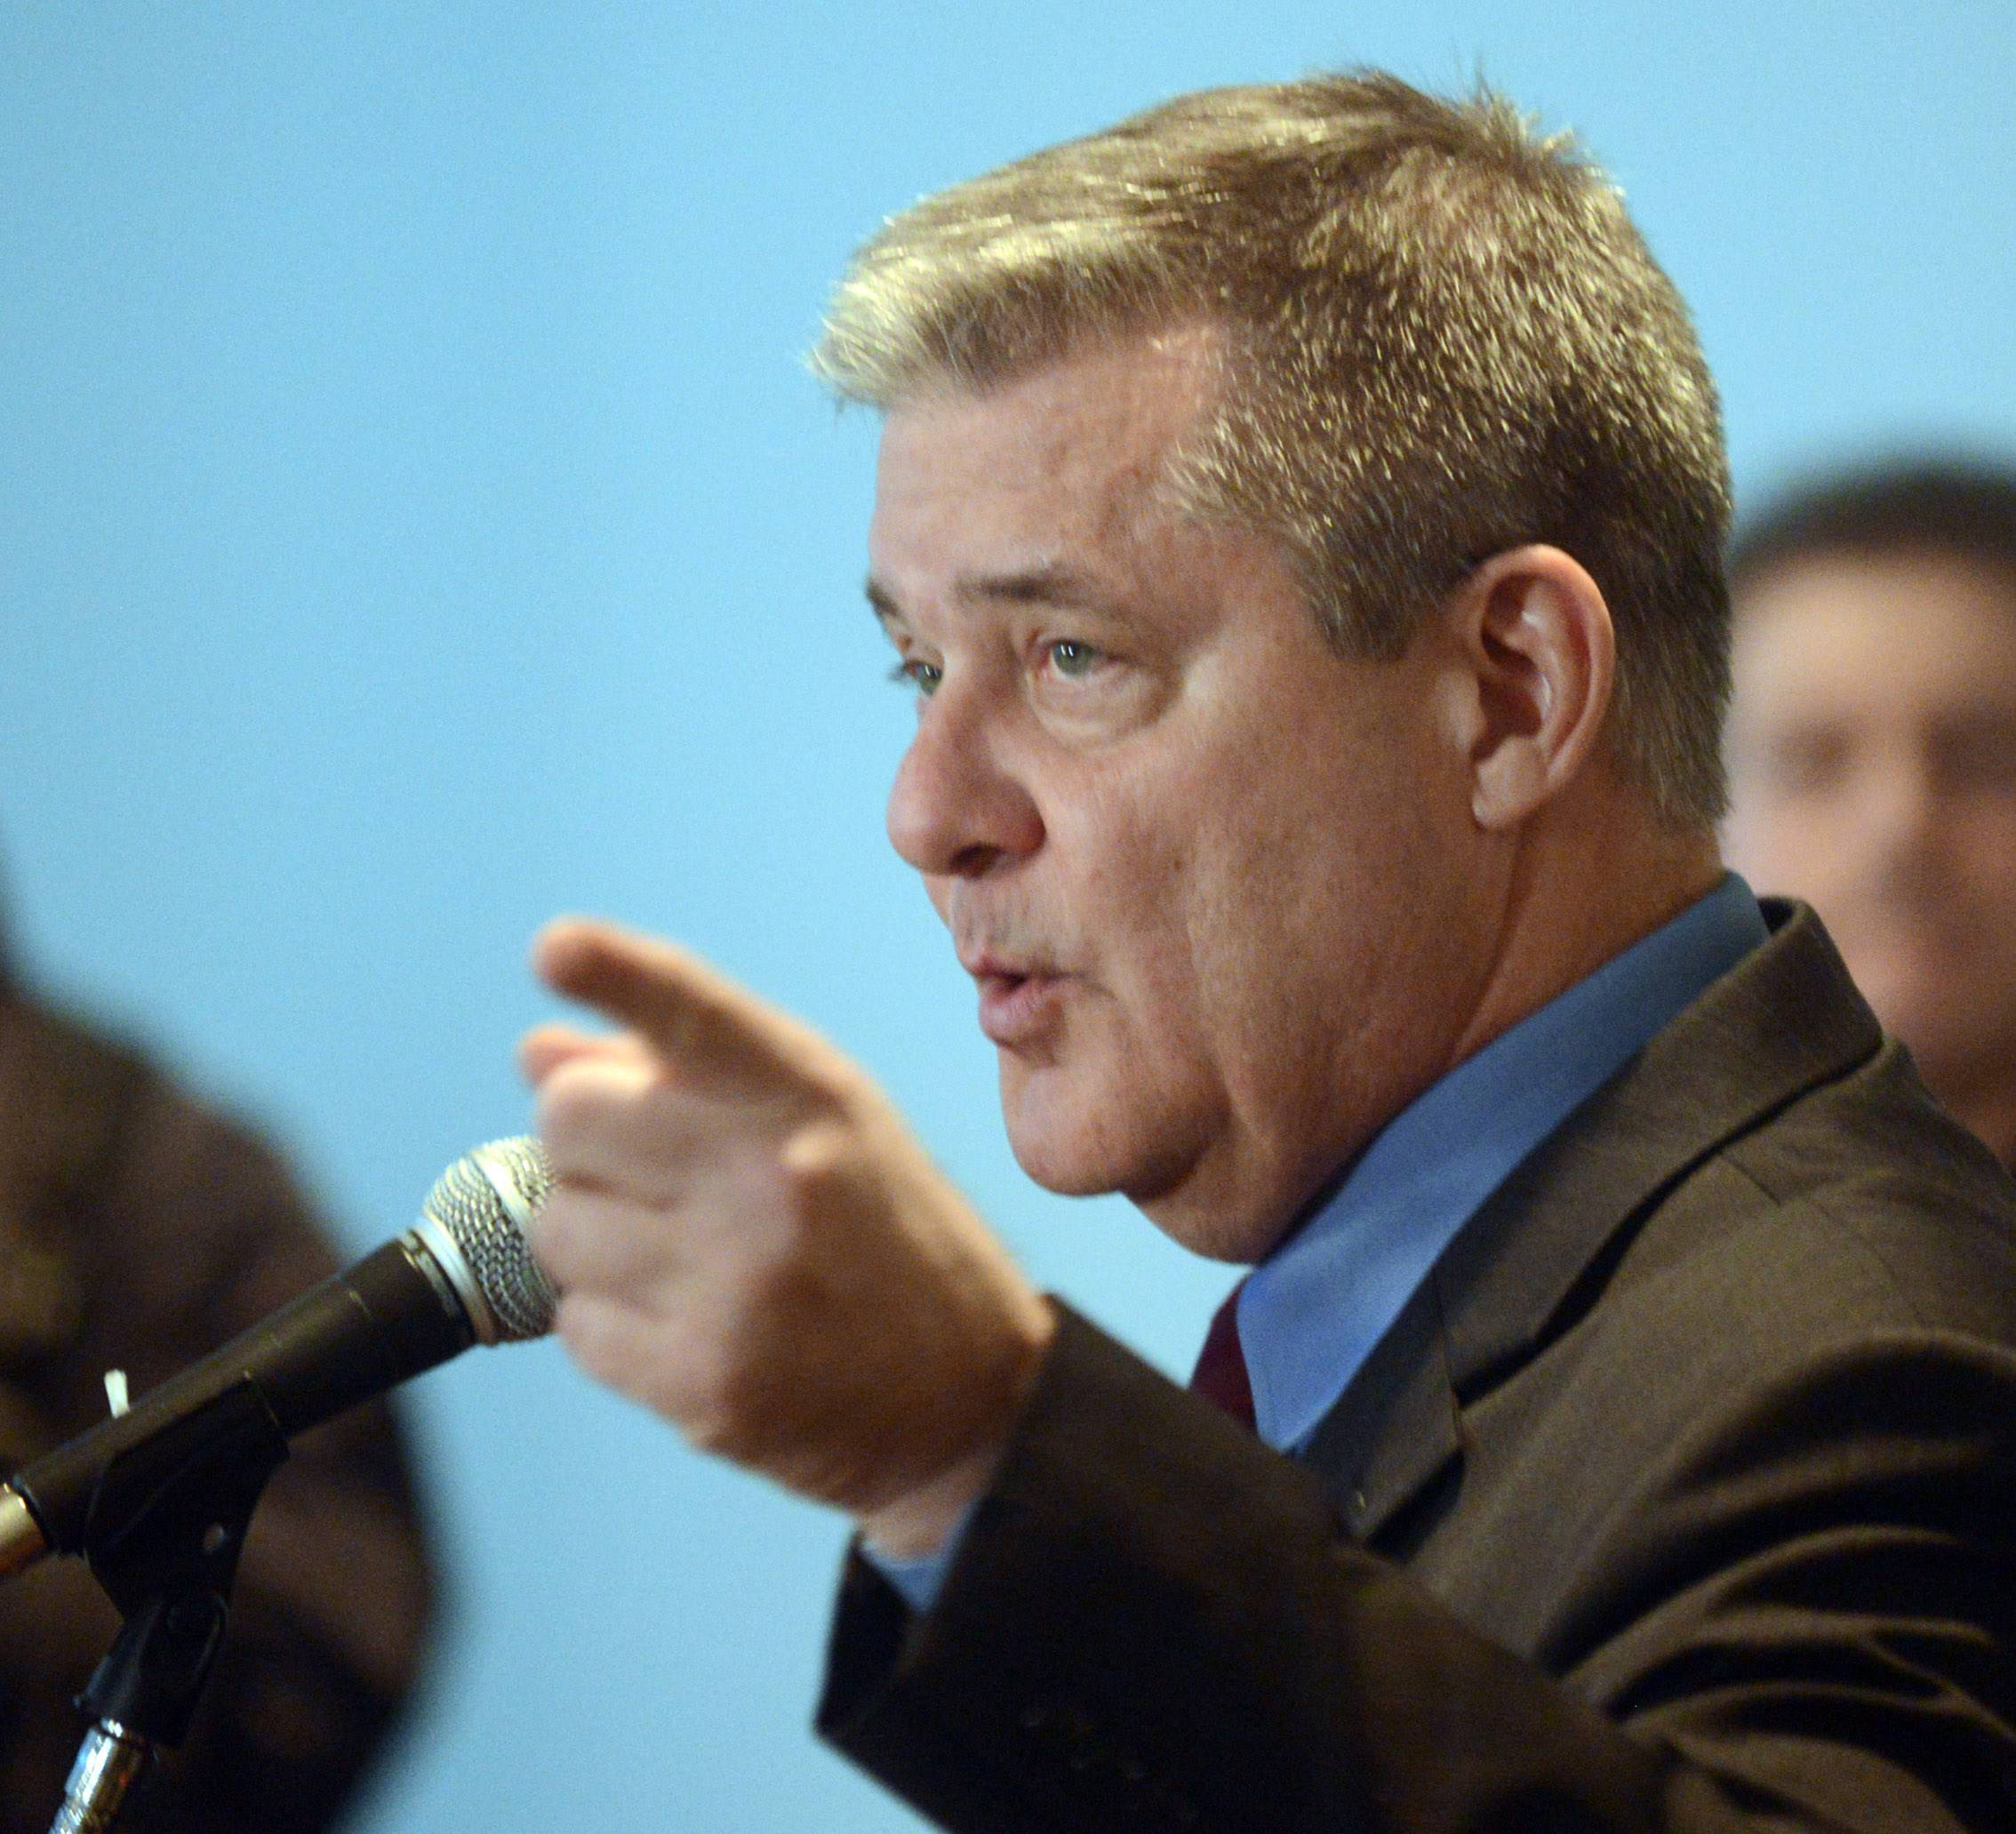 Illinois Treasurer Dan Rutherford held a news conference Monday in Schaumburg to say allegations against him are false.